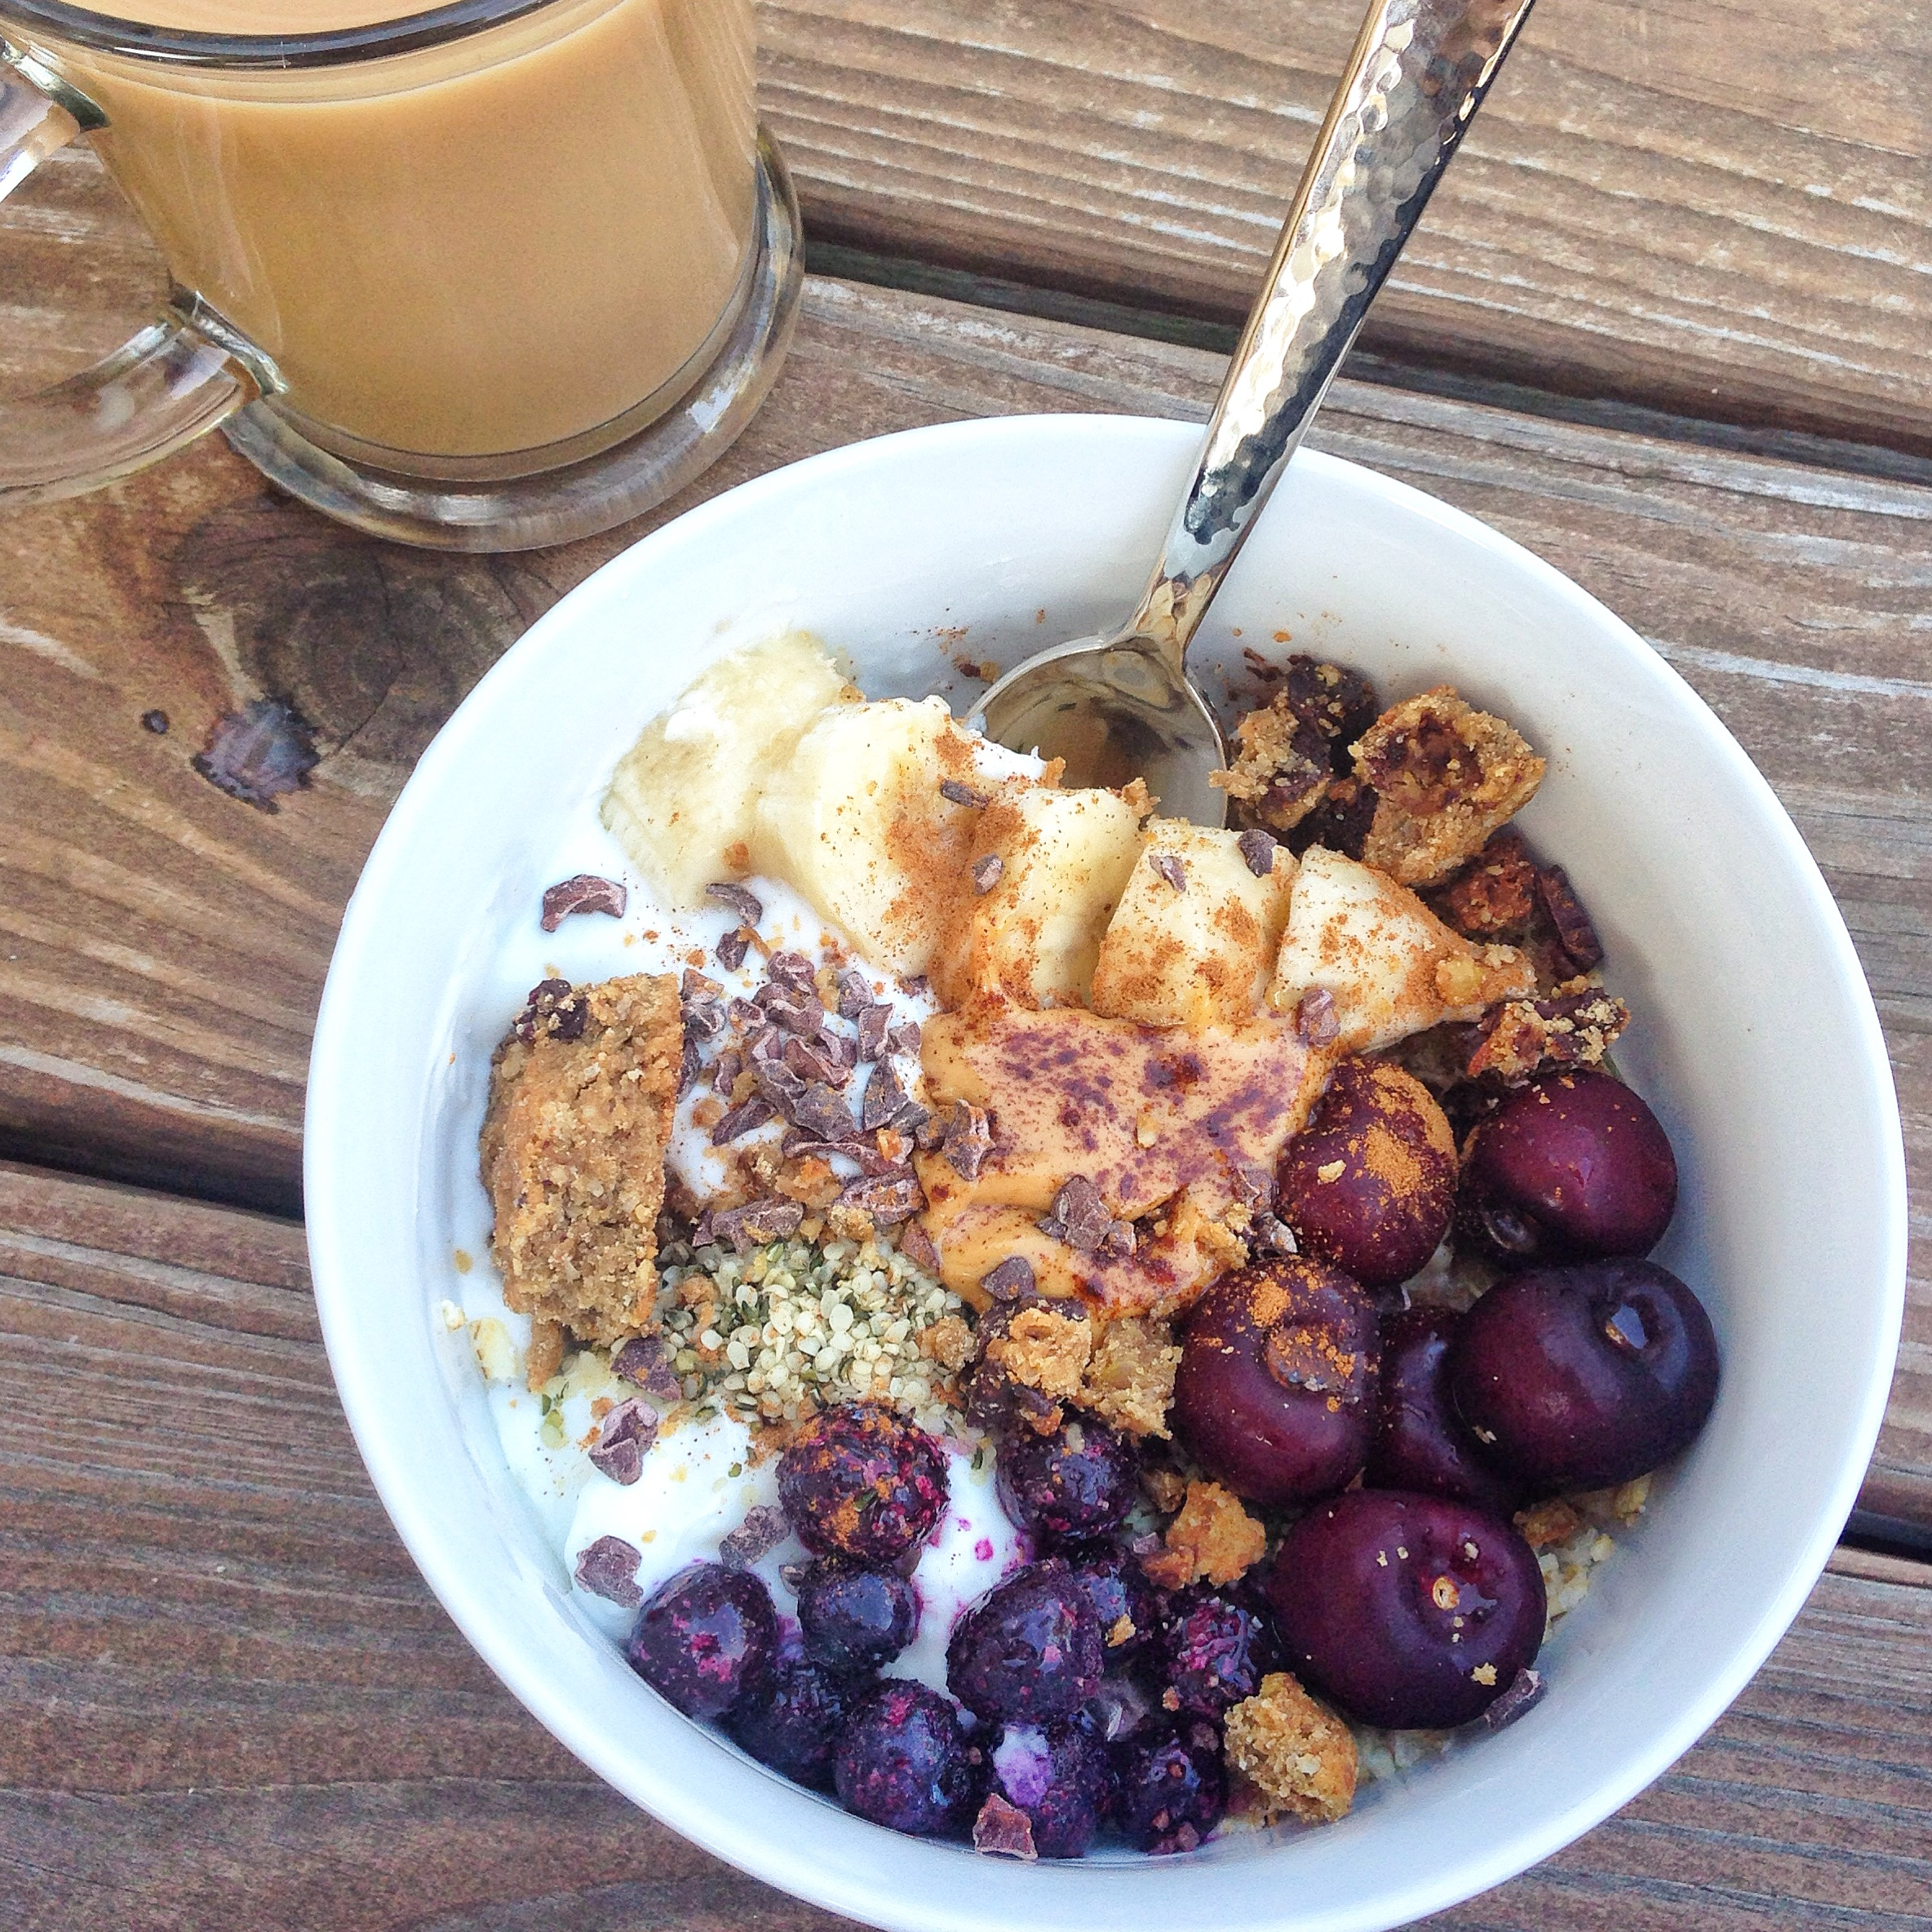 Post run foods, Best foods for recovery, sports nutrition, recovery foods